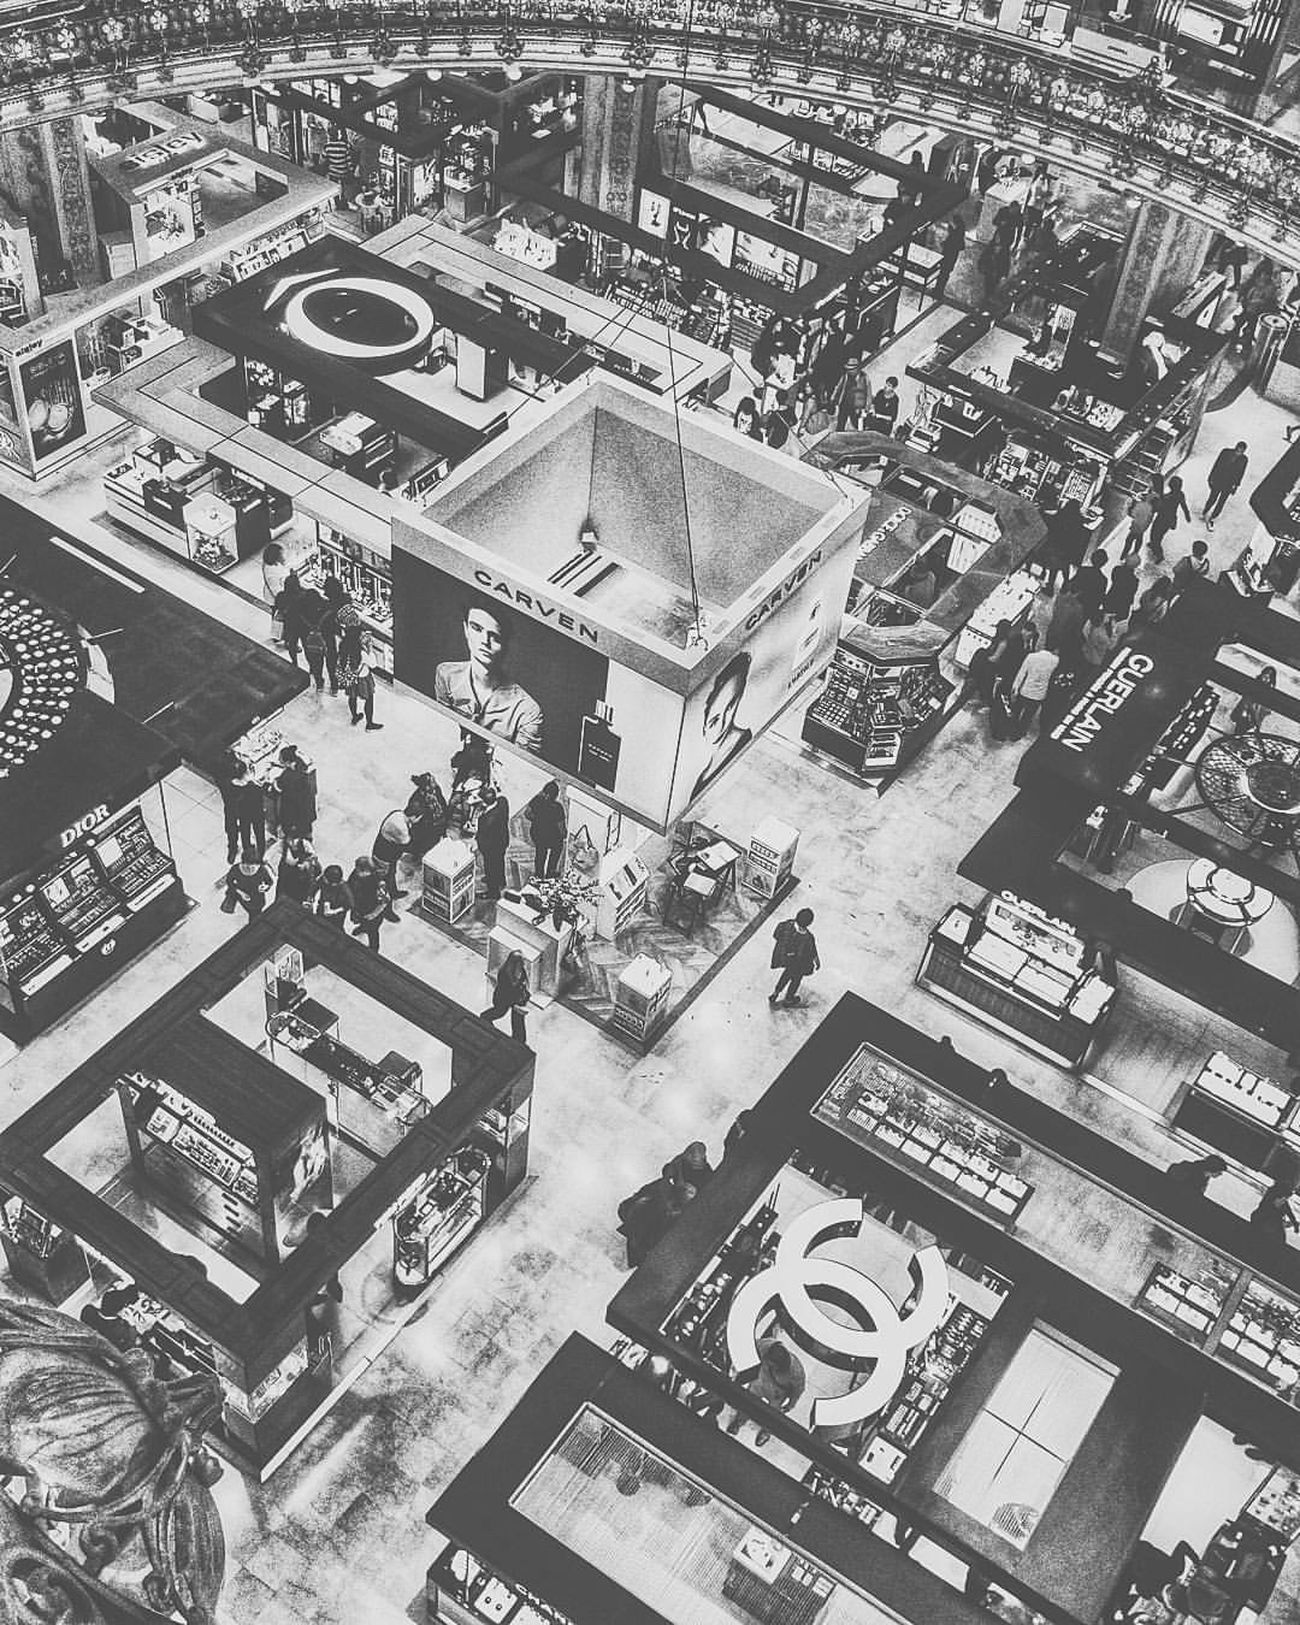 #View #Blackandwhite #Photo #Photogratphie #Paris #Shopping #Architecture